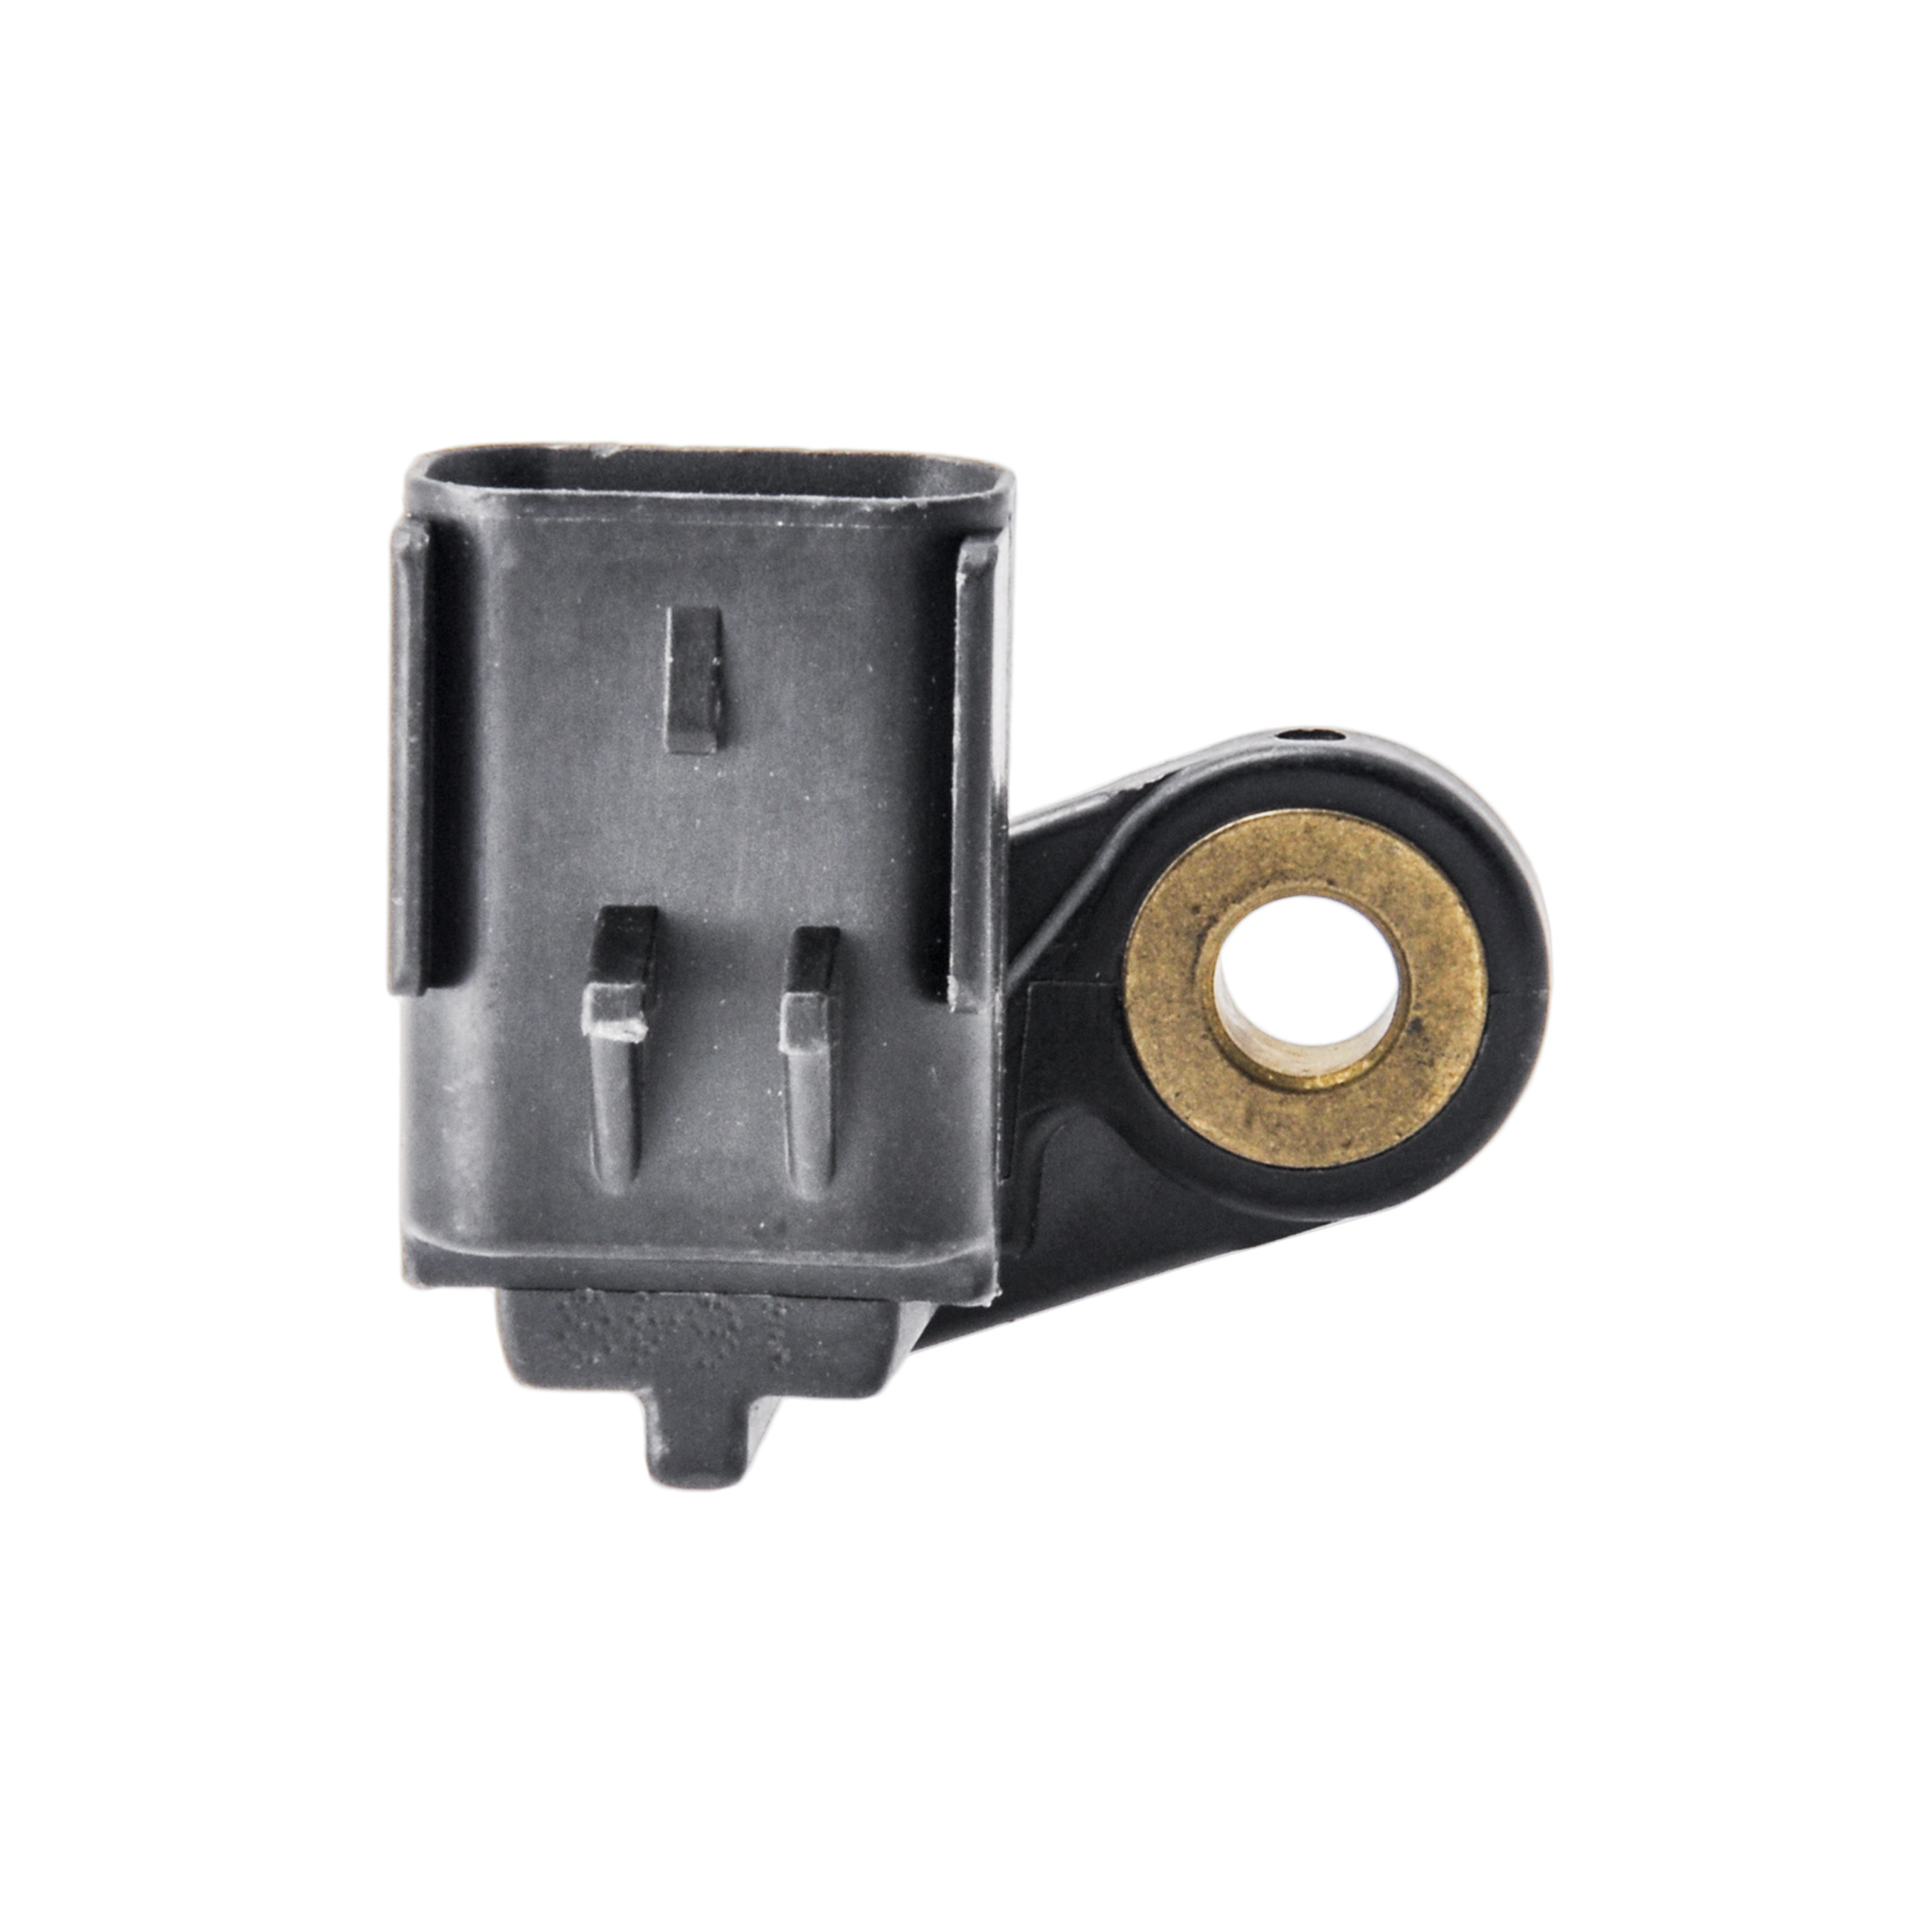 New Herko Crankshaft Position Sensor CKP2027